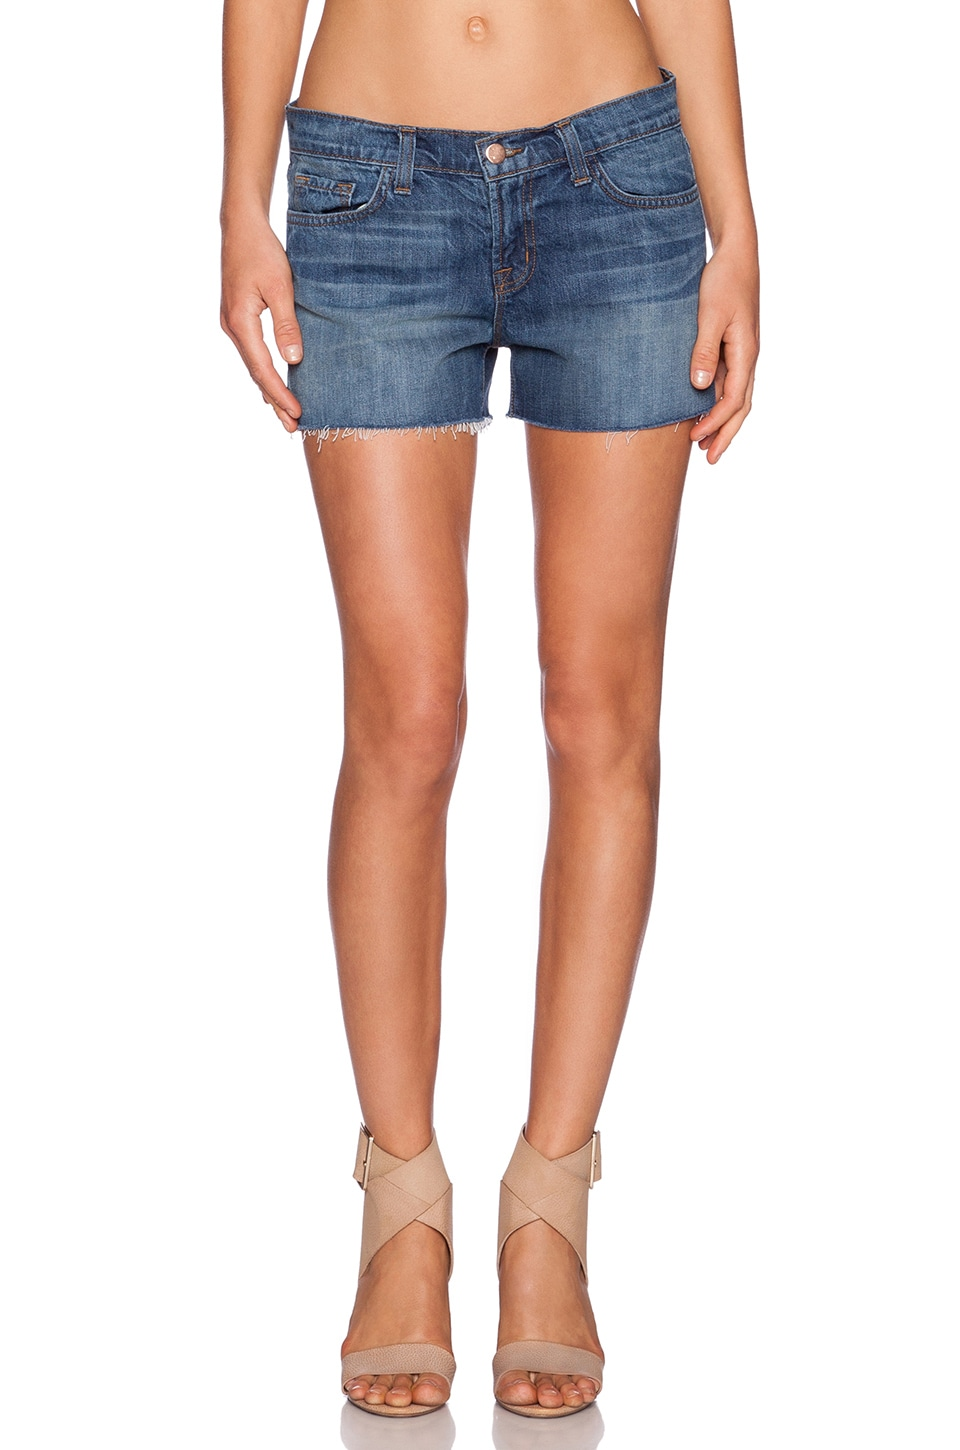 J Brand Cut Off Short in Clear View